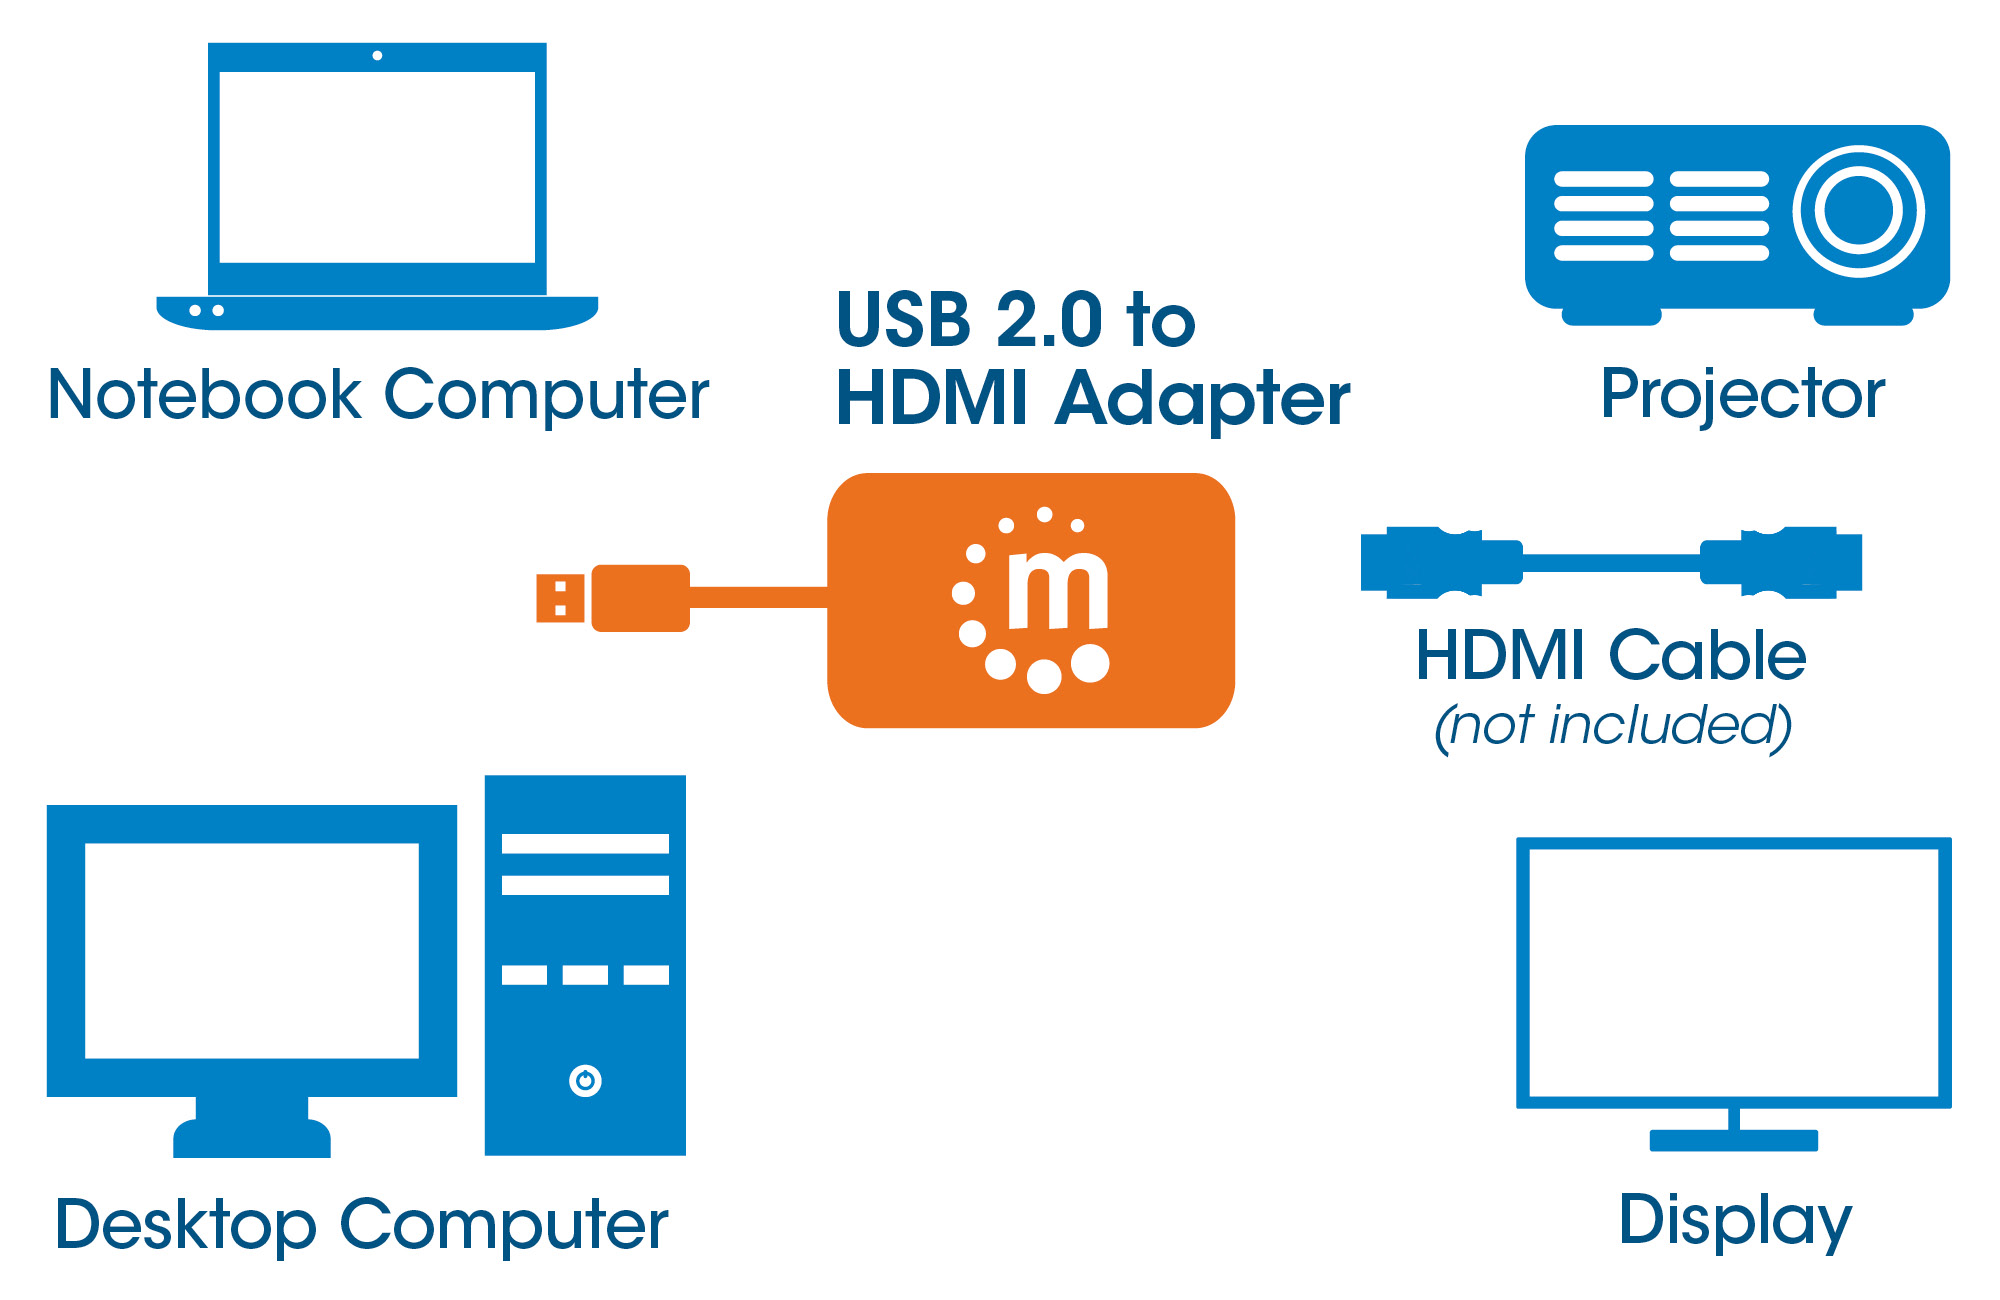 USB 2.0 to HDMI Adapter